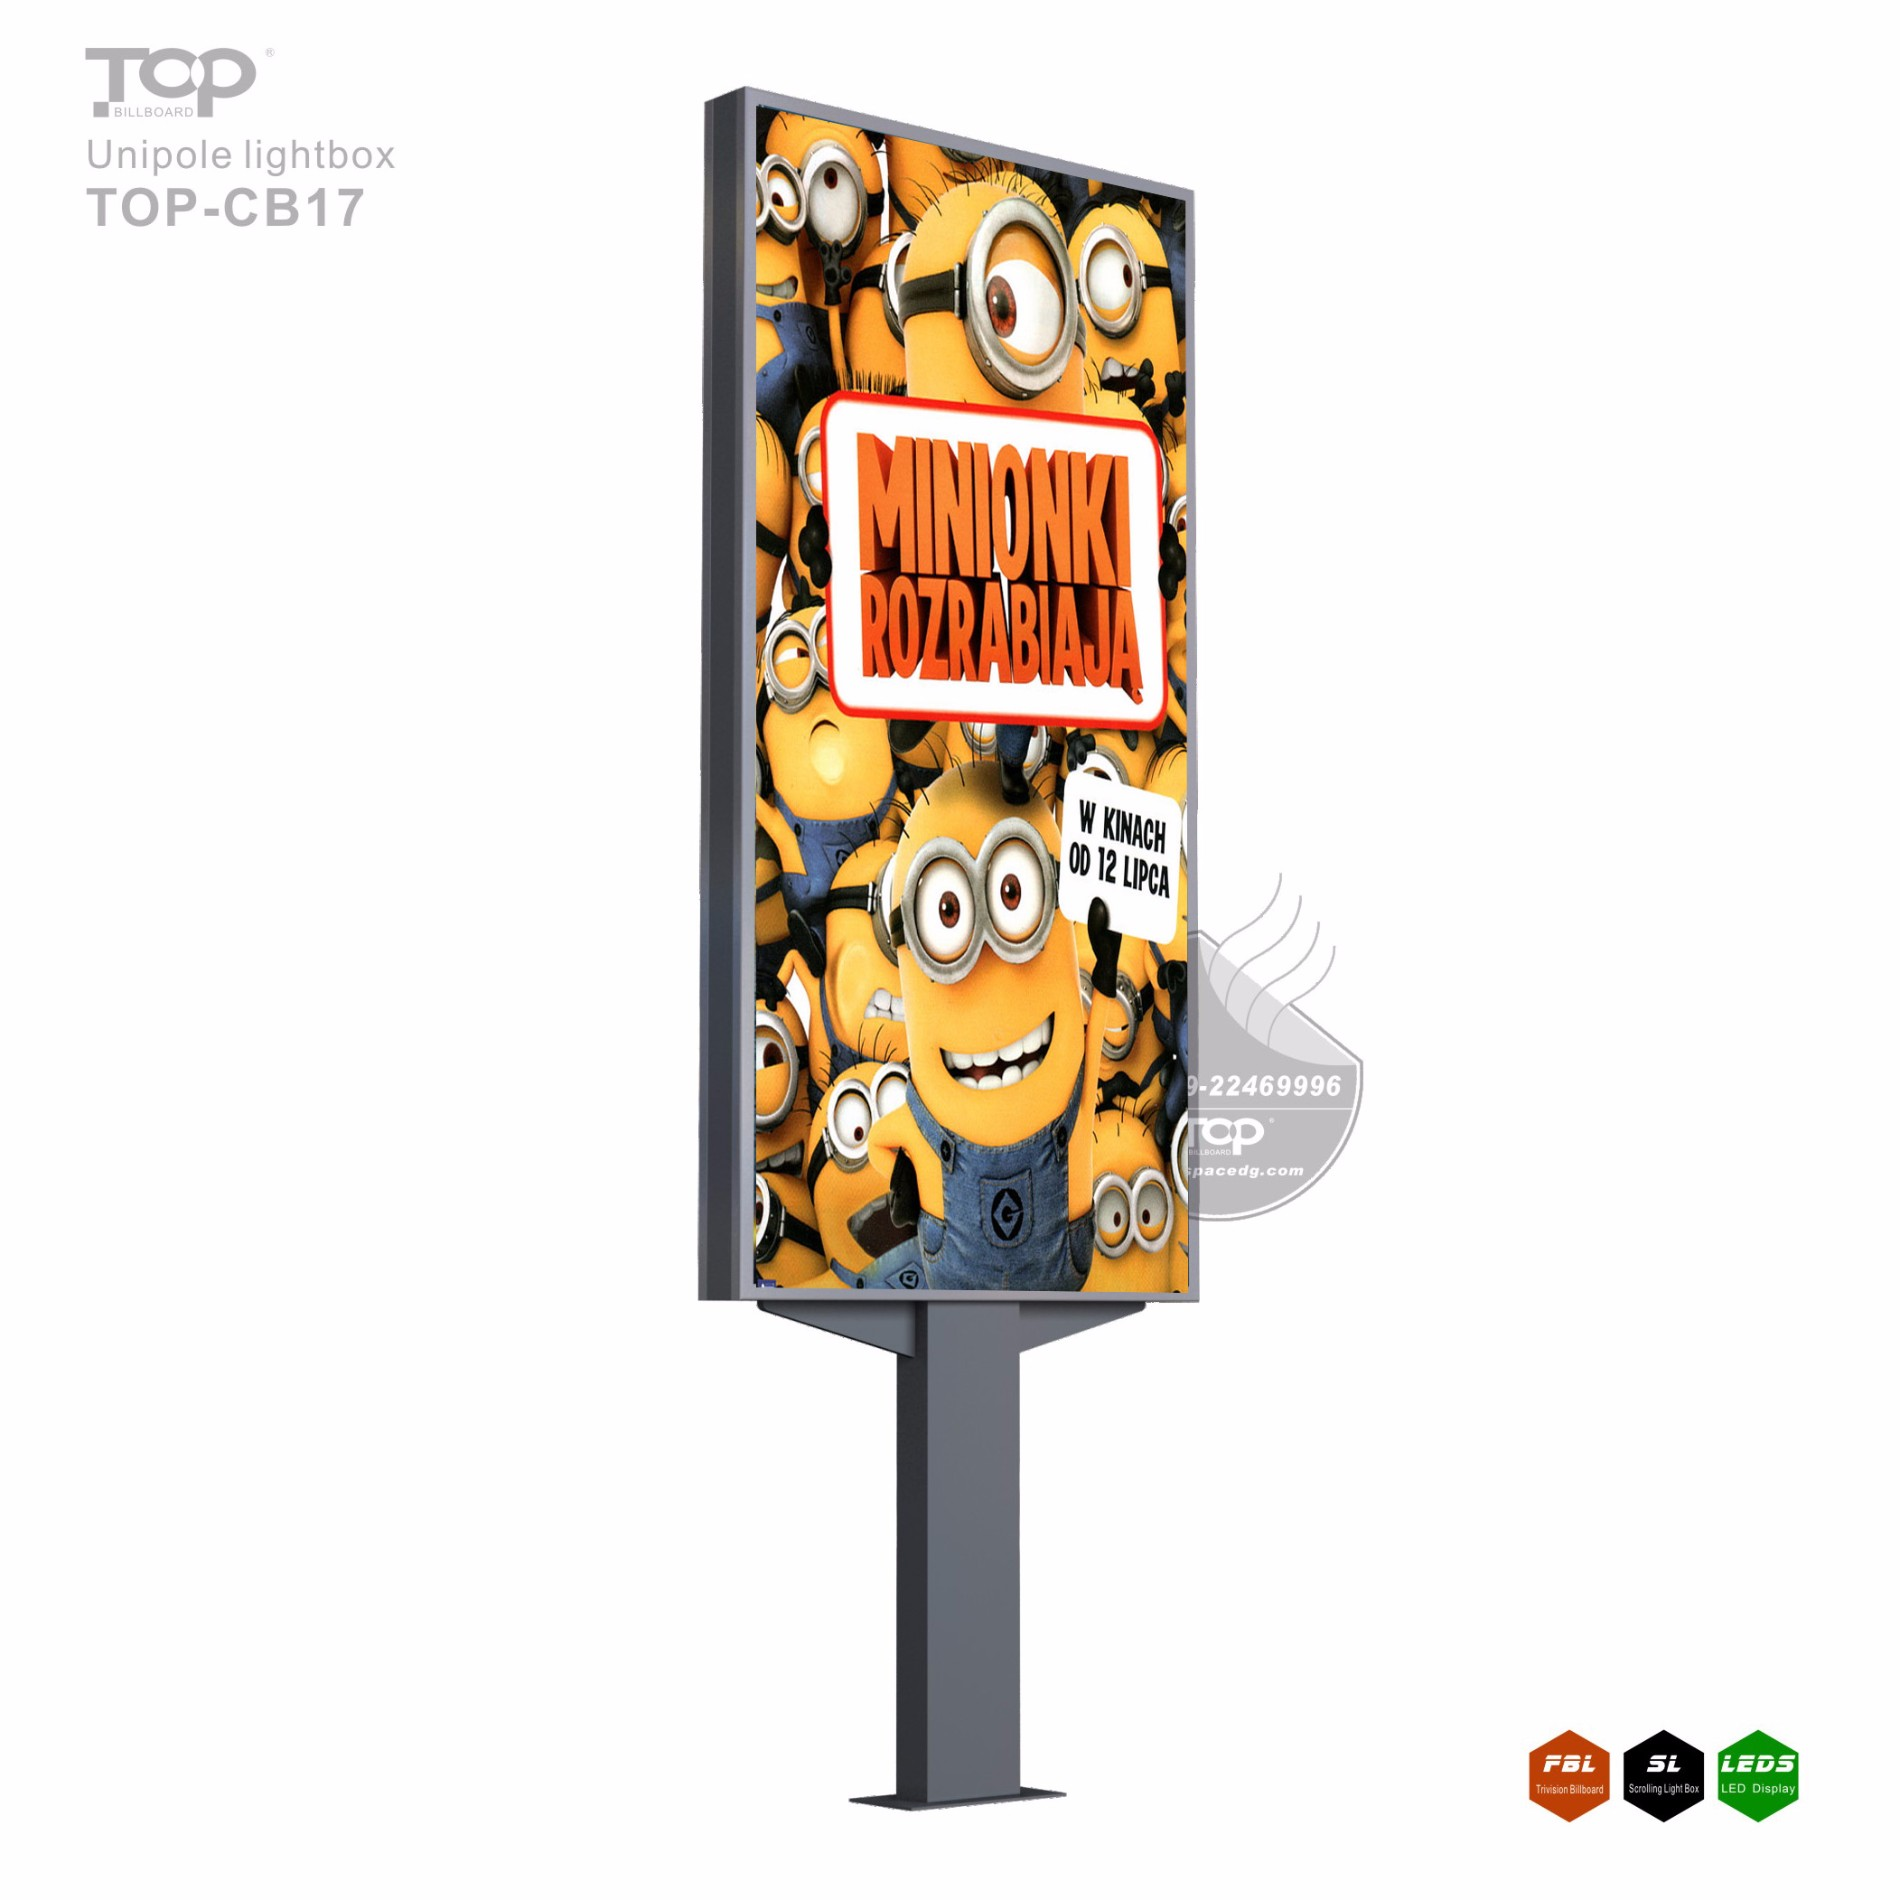 Advertising Explosion Proof Petrol Station Light Box